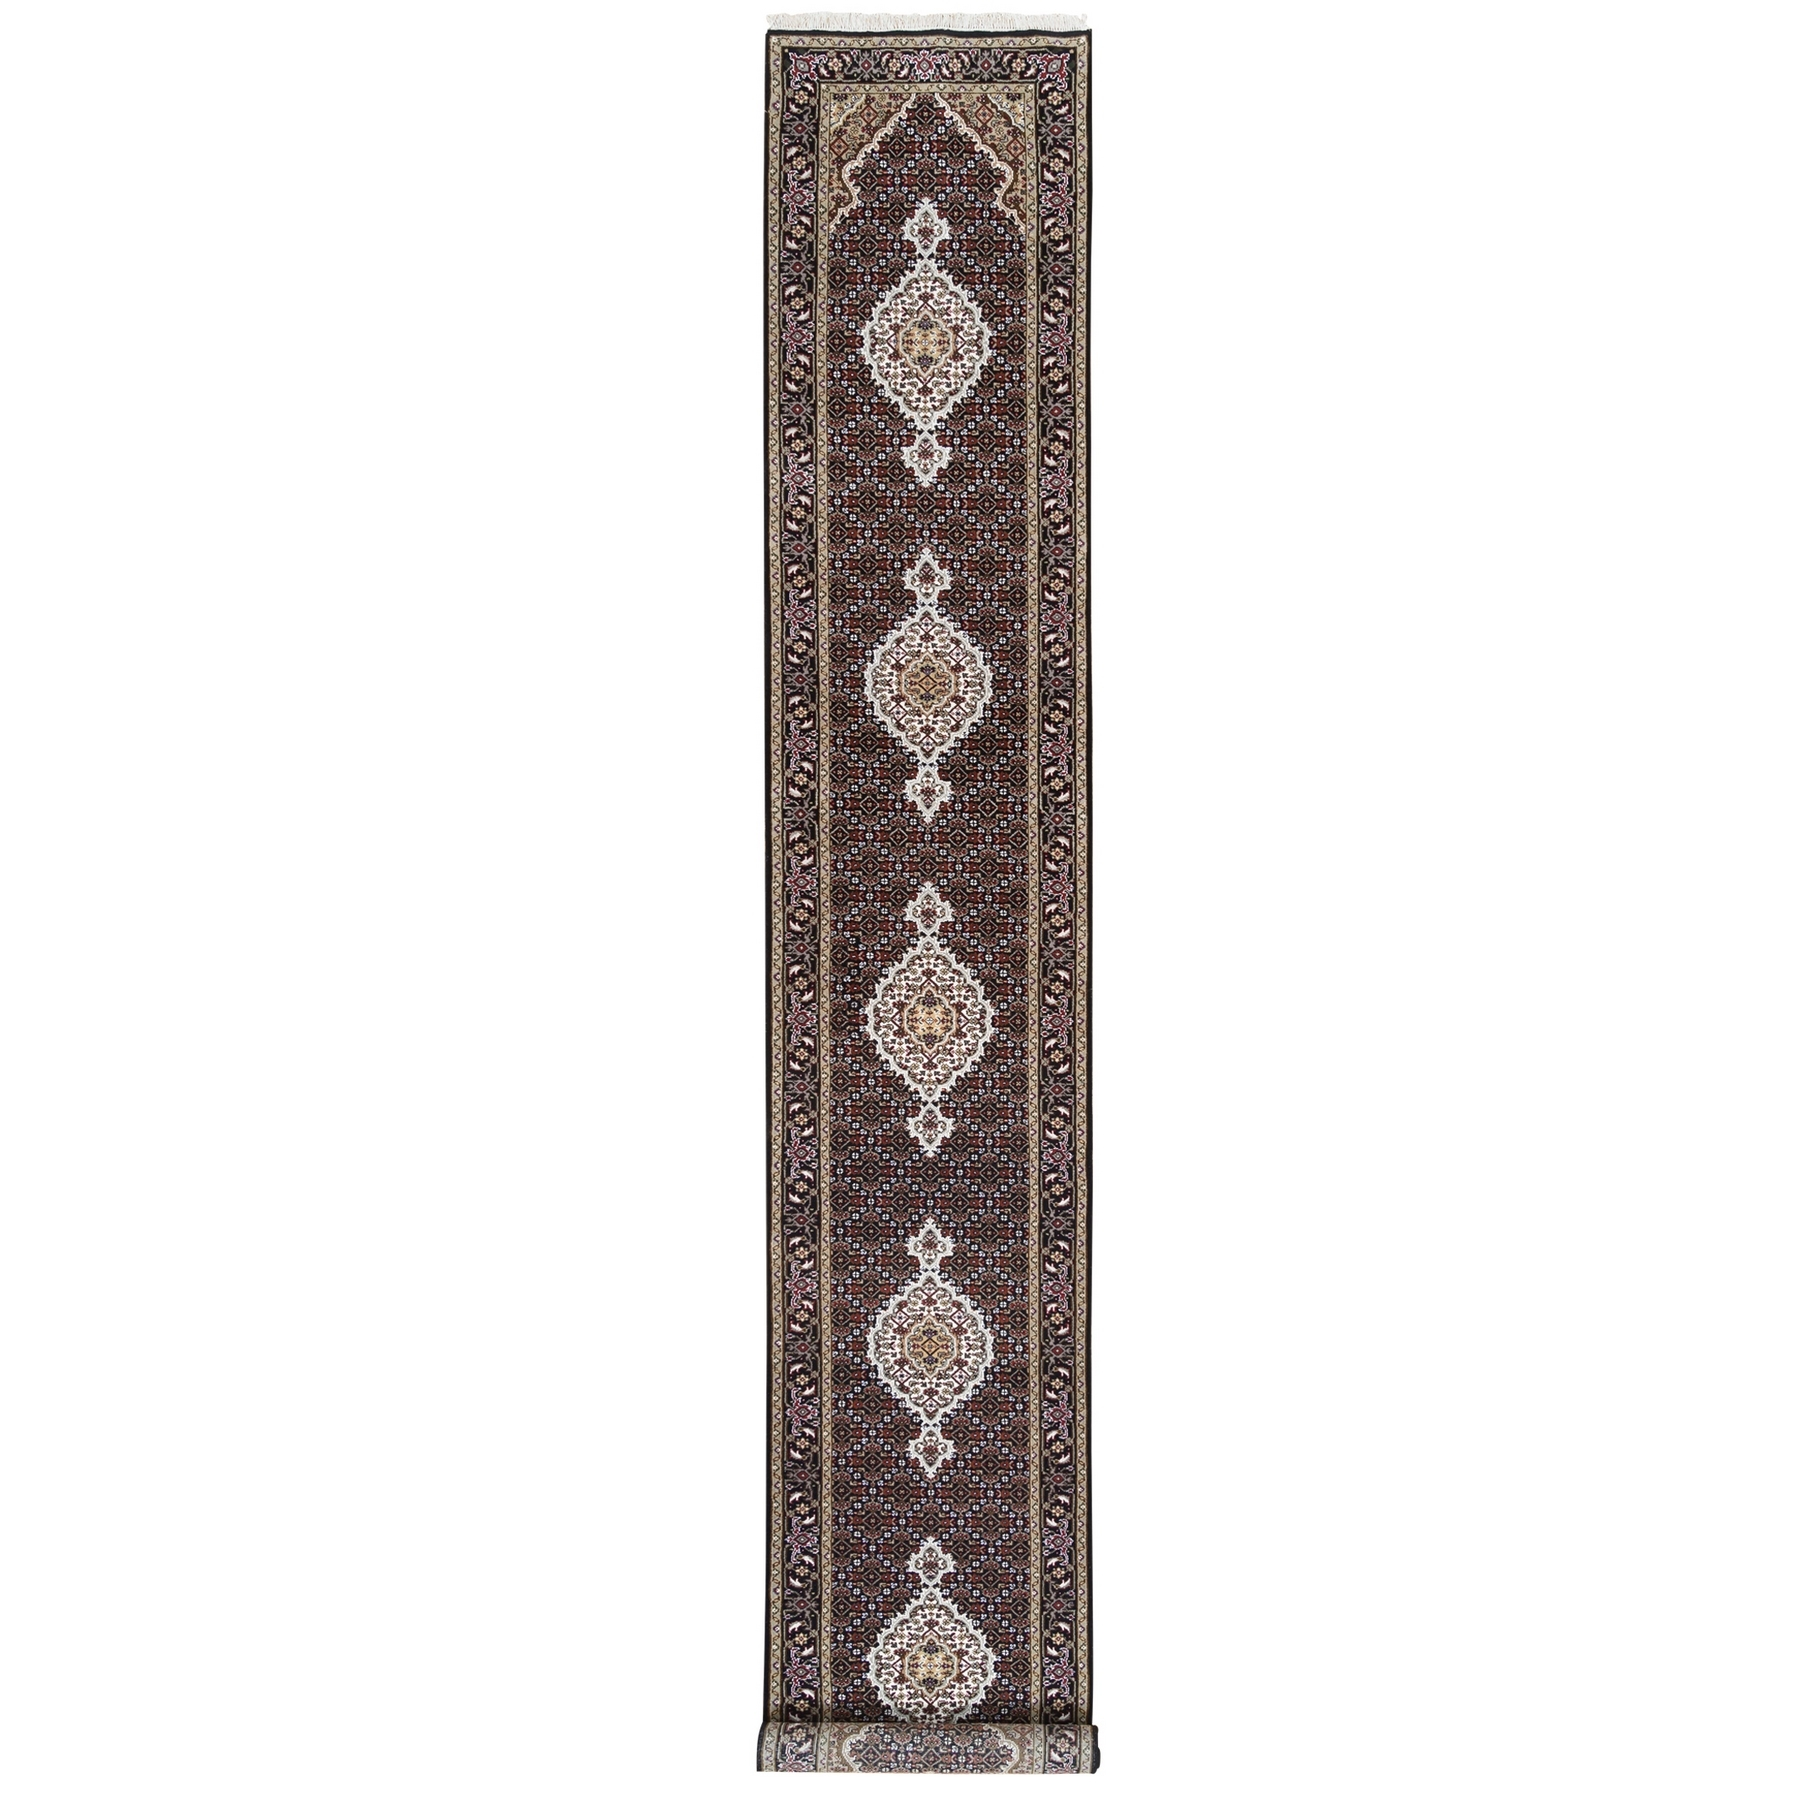 Traditional Rugs LUV562653